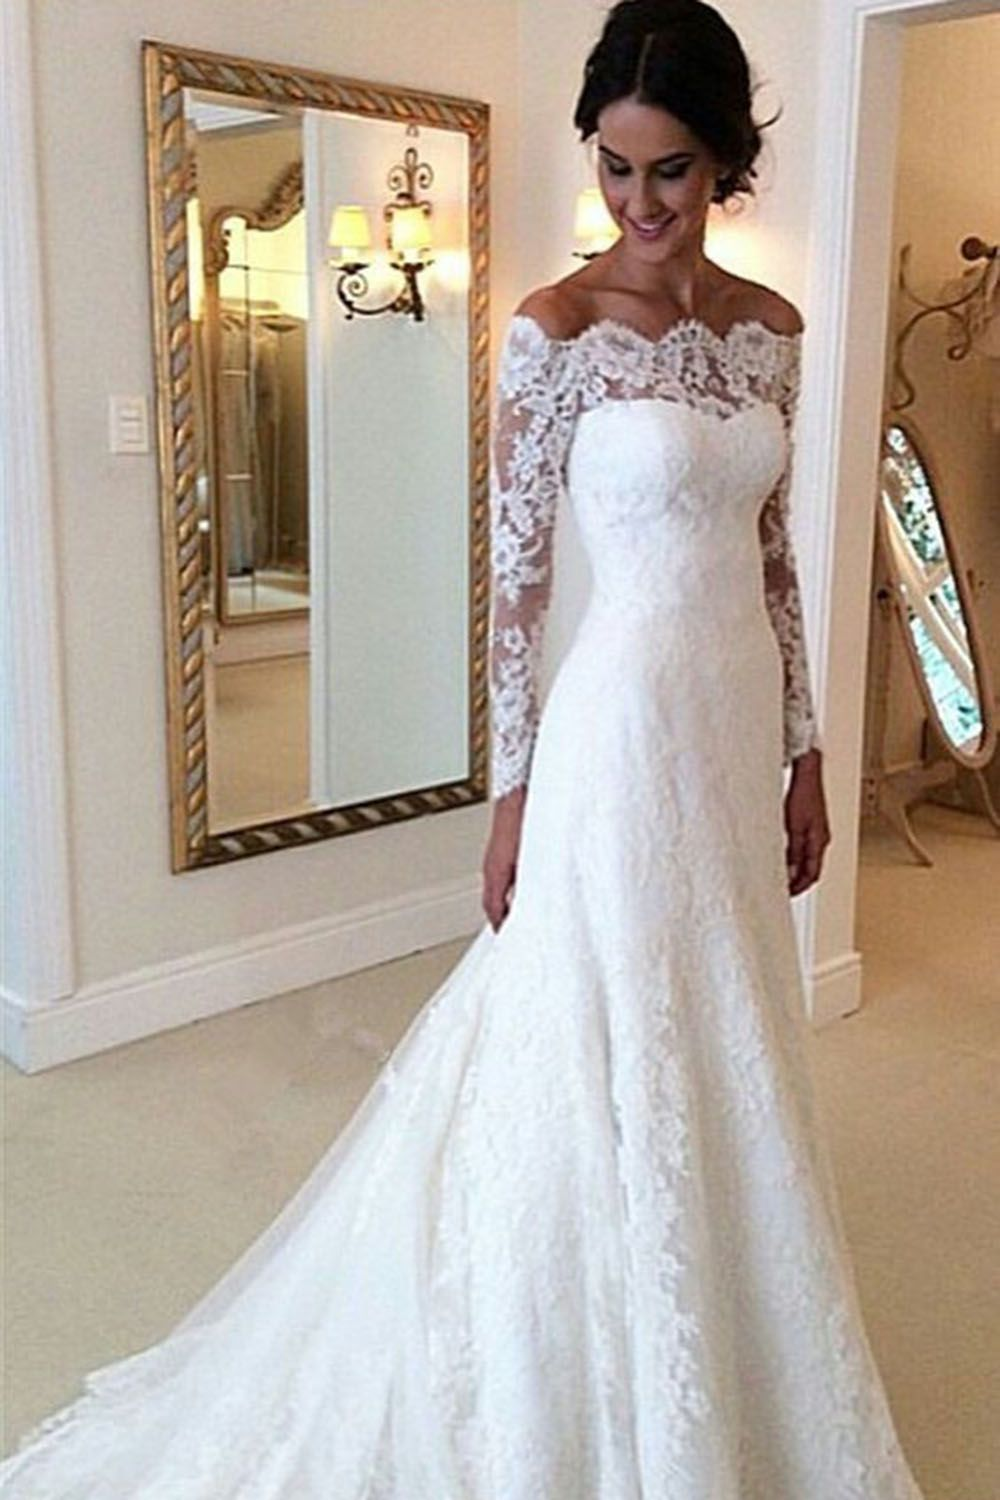 Gorgeous White Long Sleeves Vintage Wedding Dresses Bridal Gown Sw159 In 2021 Wedding Dress Trends Wedding Dress Sleeves Wedding Dresses Lace [ 1500 x 1000 Pixel ]